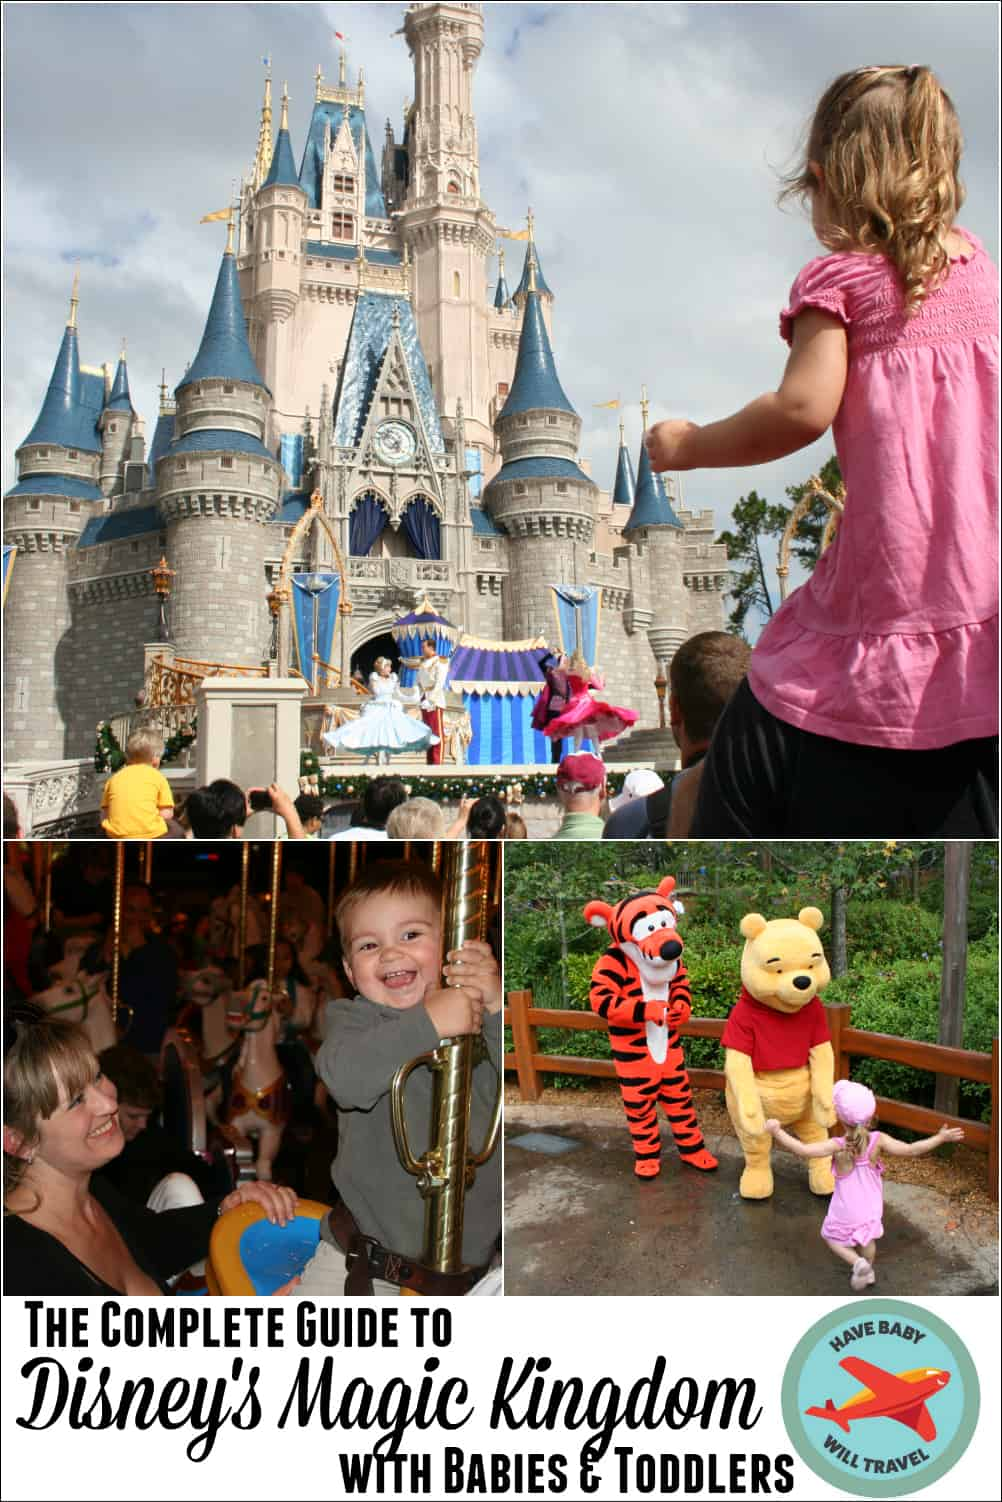 Infant Baby In Carrier Disney 39;s Magic Kingdom With Babies Toddlers Have Baby